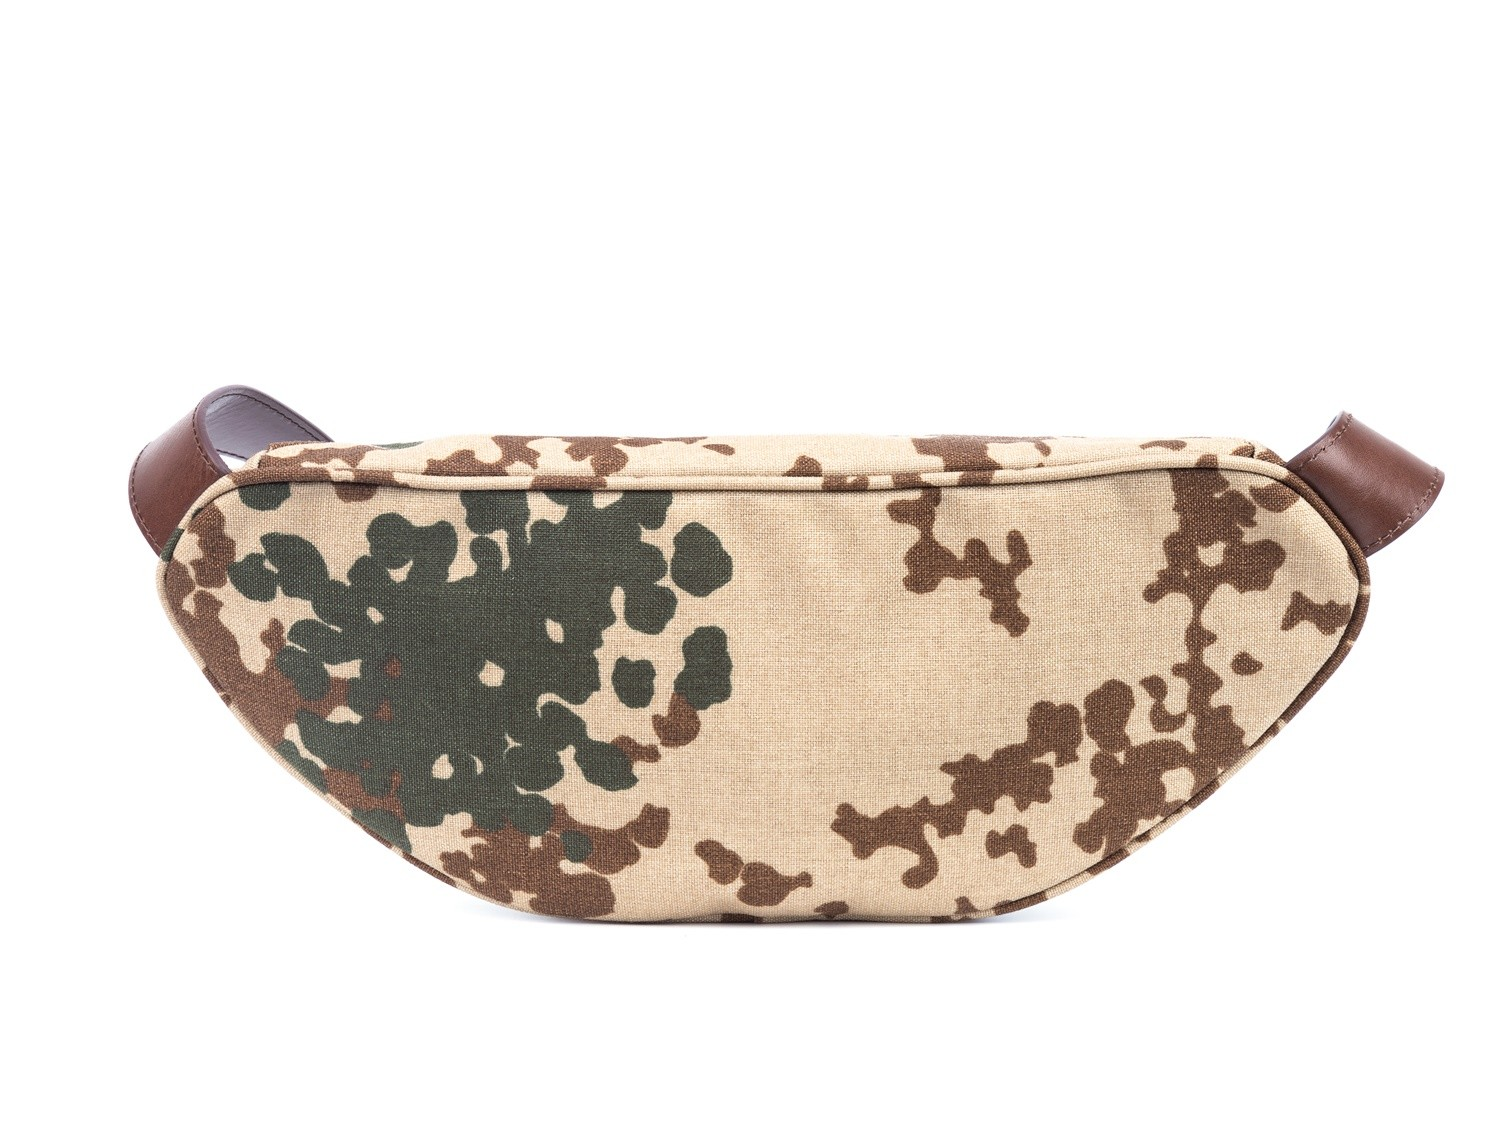 GF bags-Body Bag Genuine Leather Wax Leather Strap Camouflage Nylon Pocket-gaofeng Bags-5